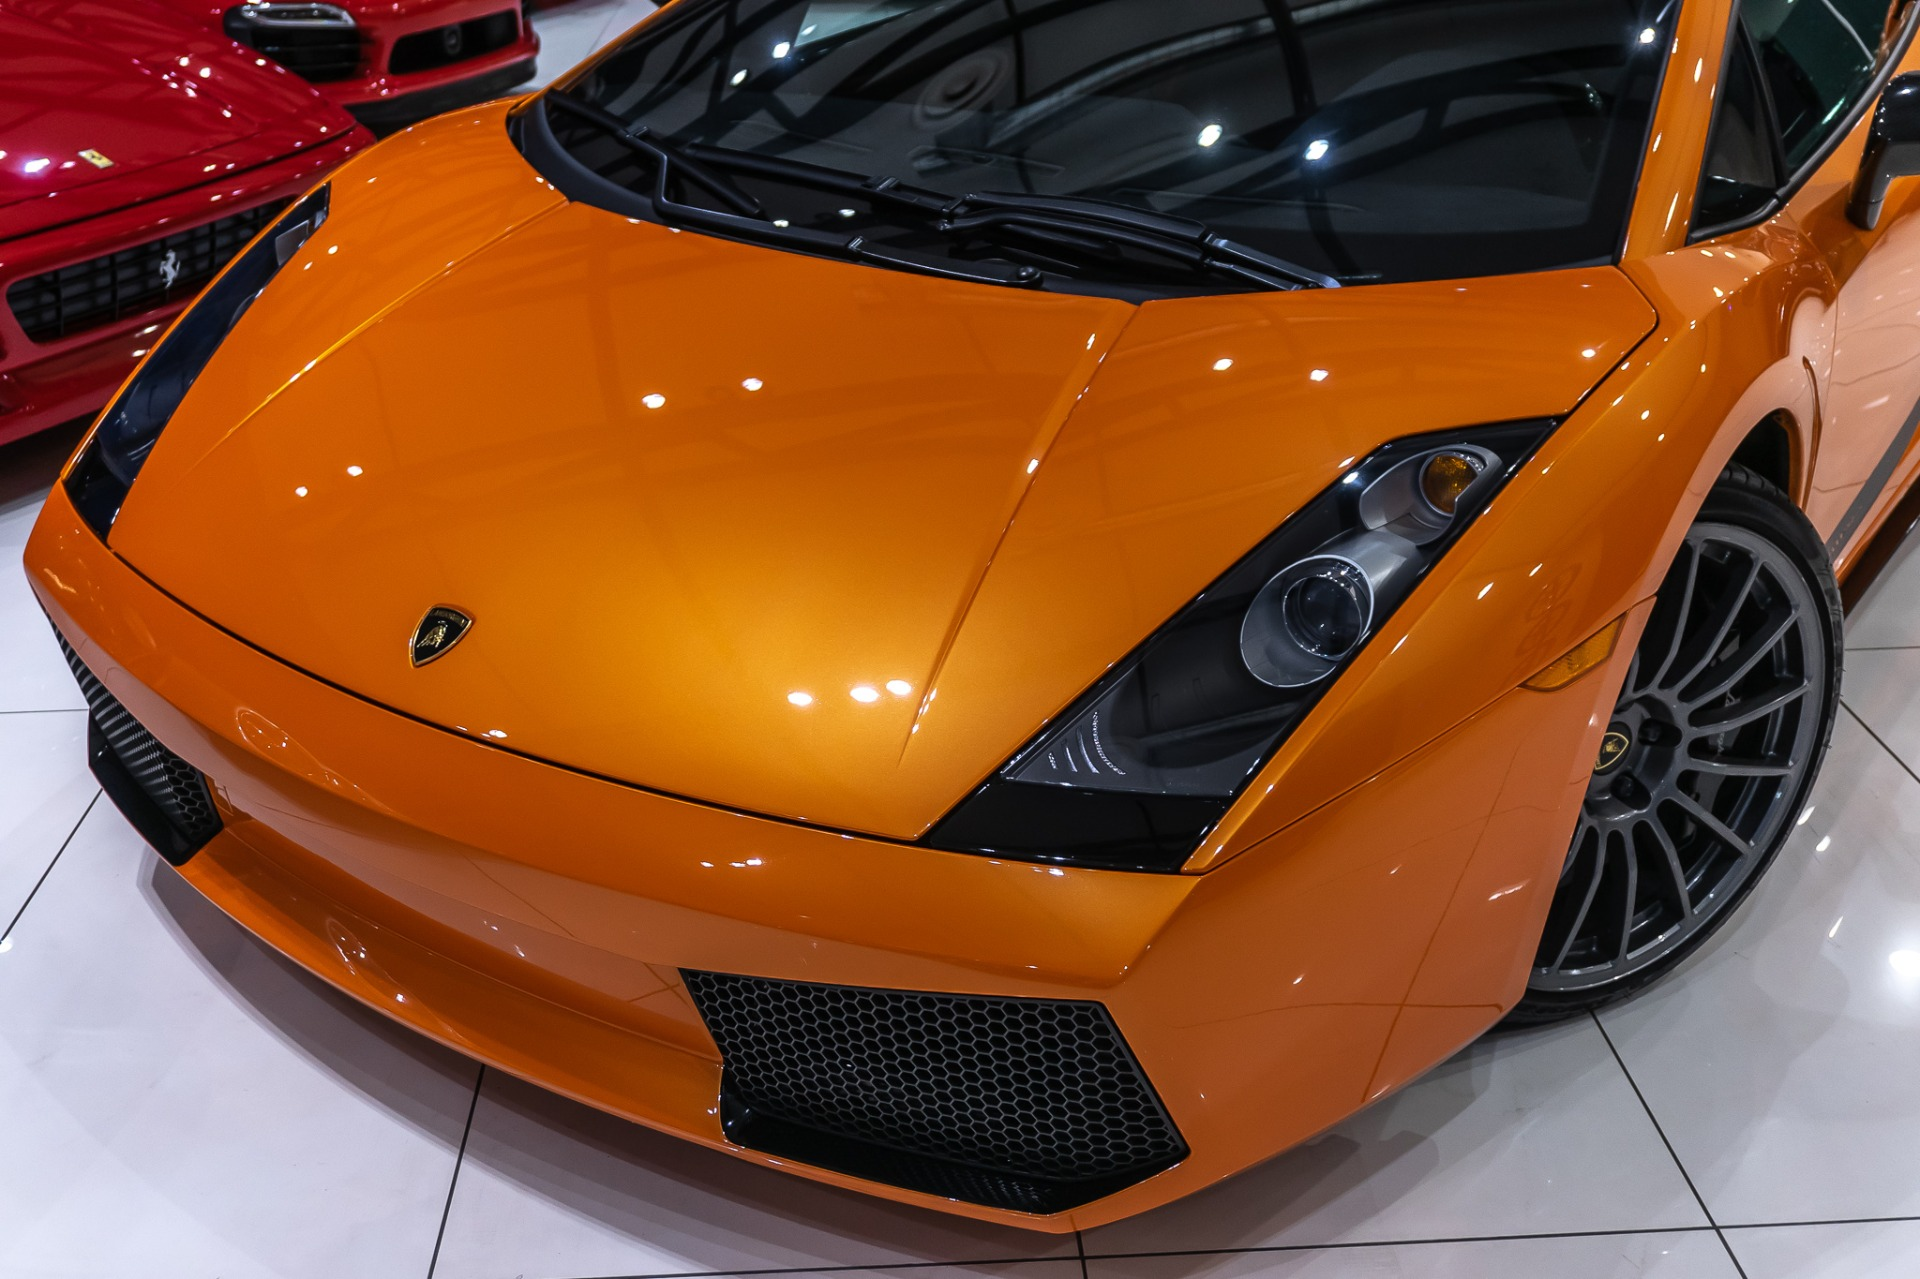 Used-2008-Lamborghini-Gallardo-Superleggera-Fully-Serviced-Incredibly-Clean